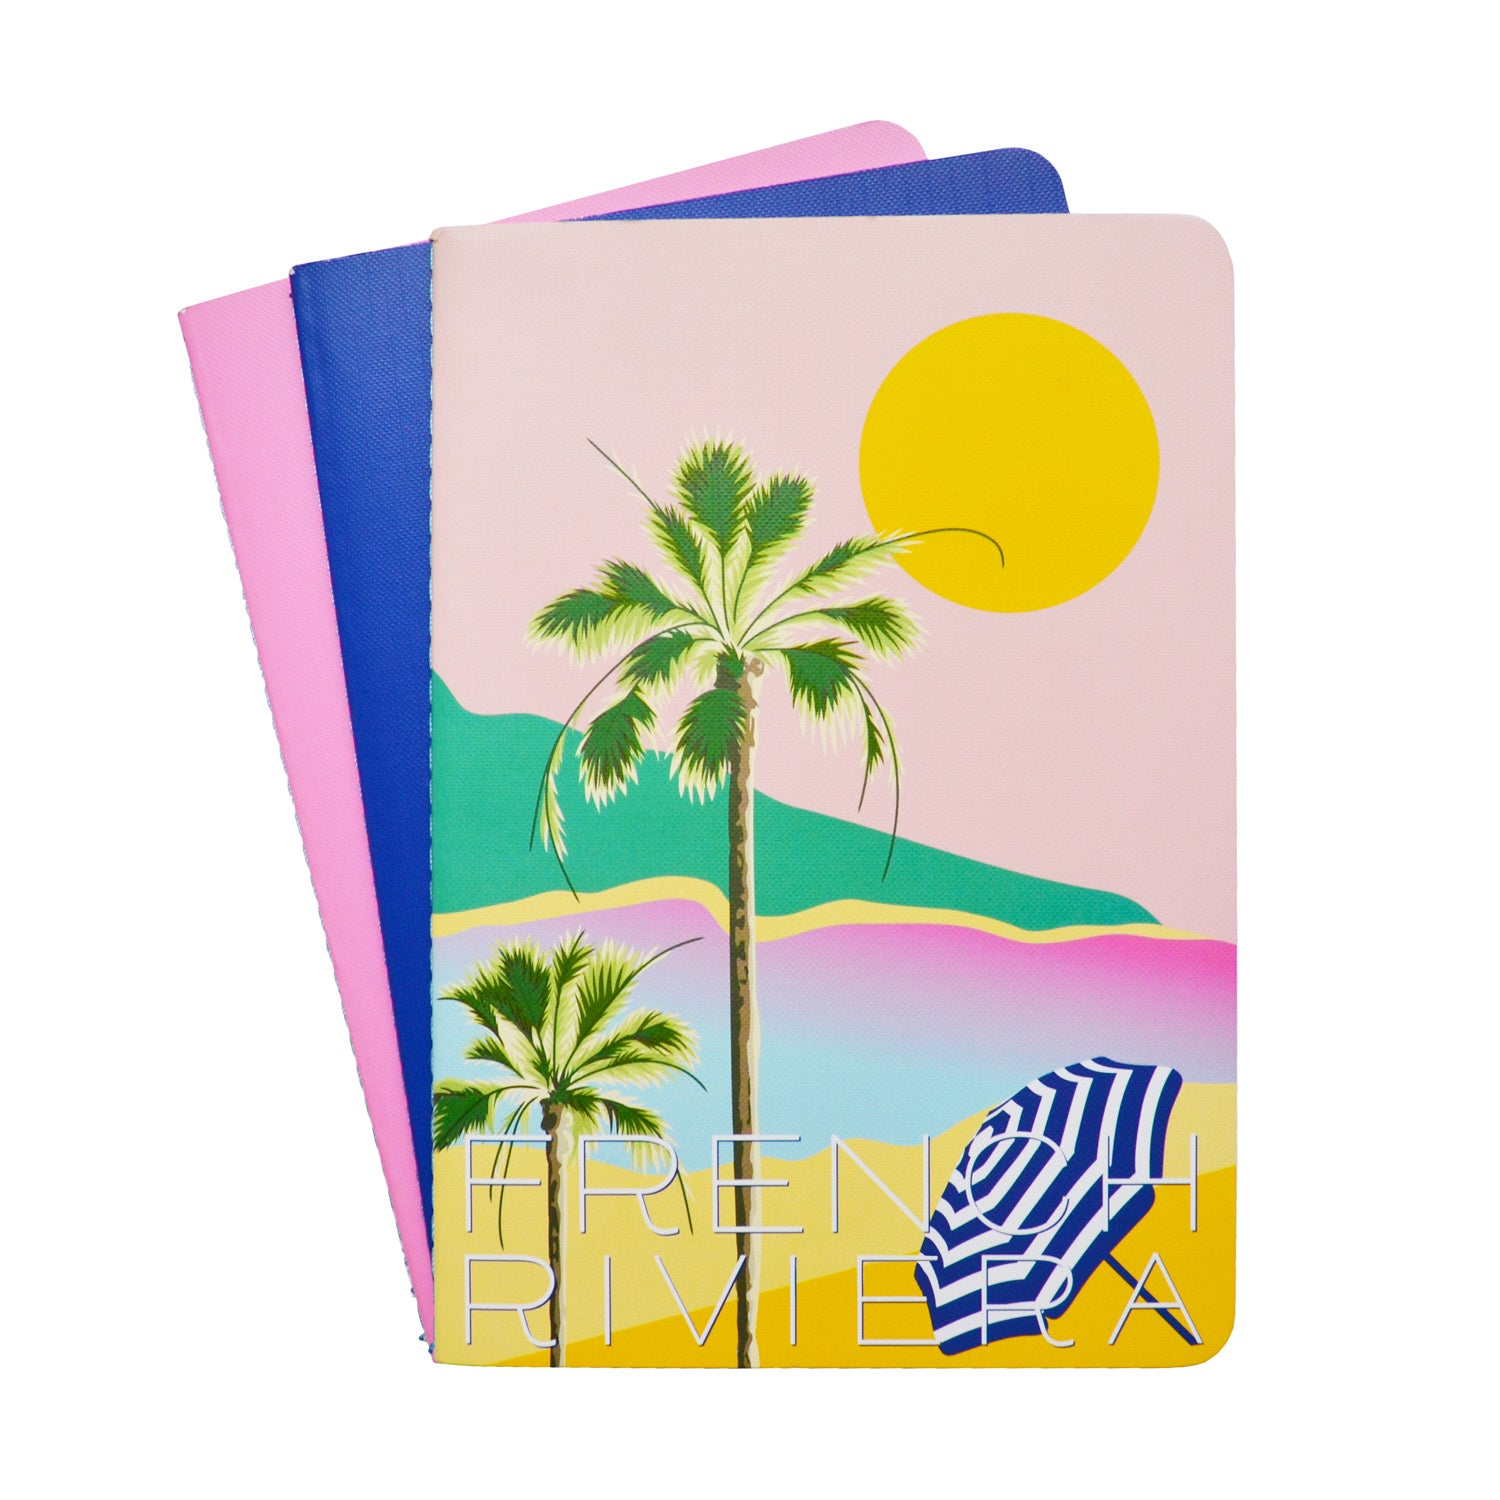 French Riviera Set of 3 A5 Notebooks - MissieMay